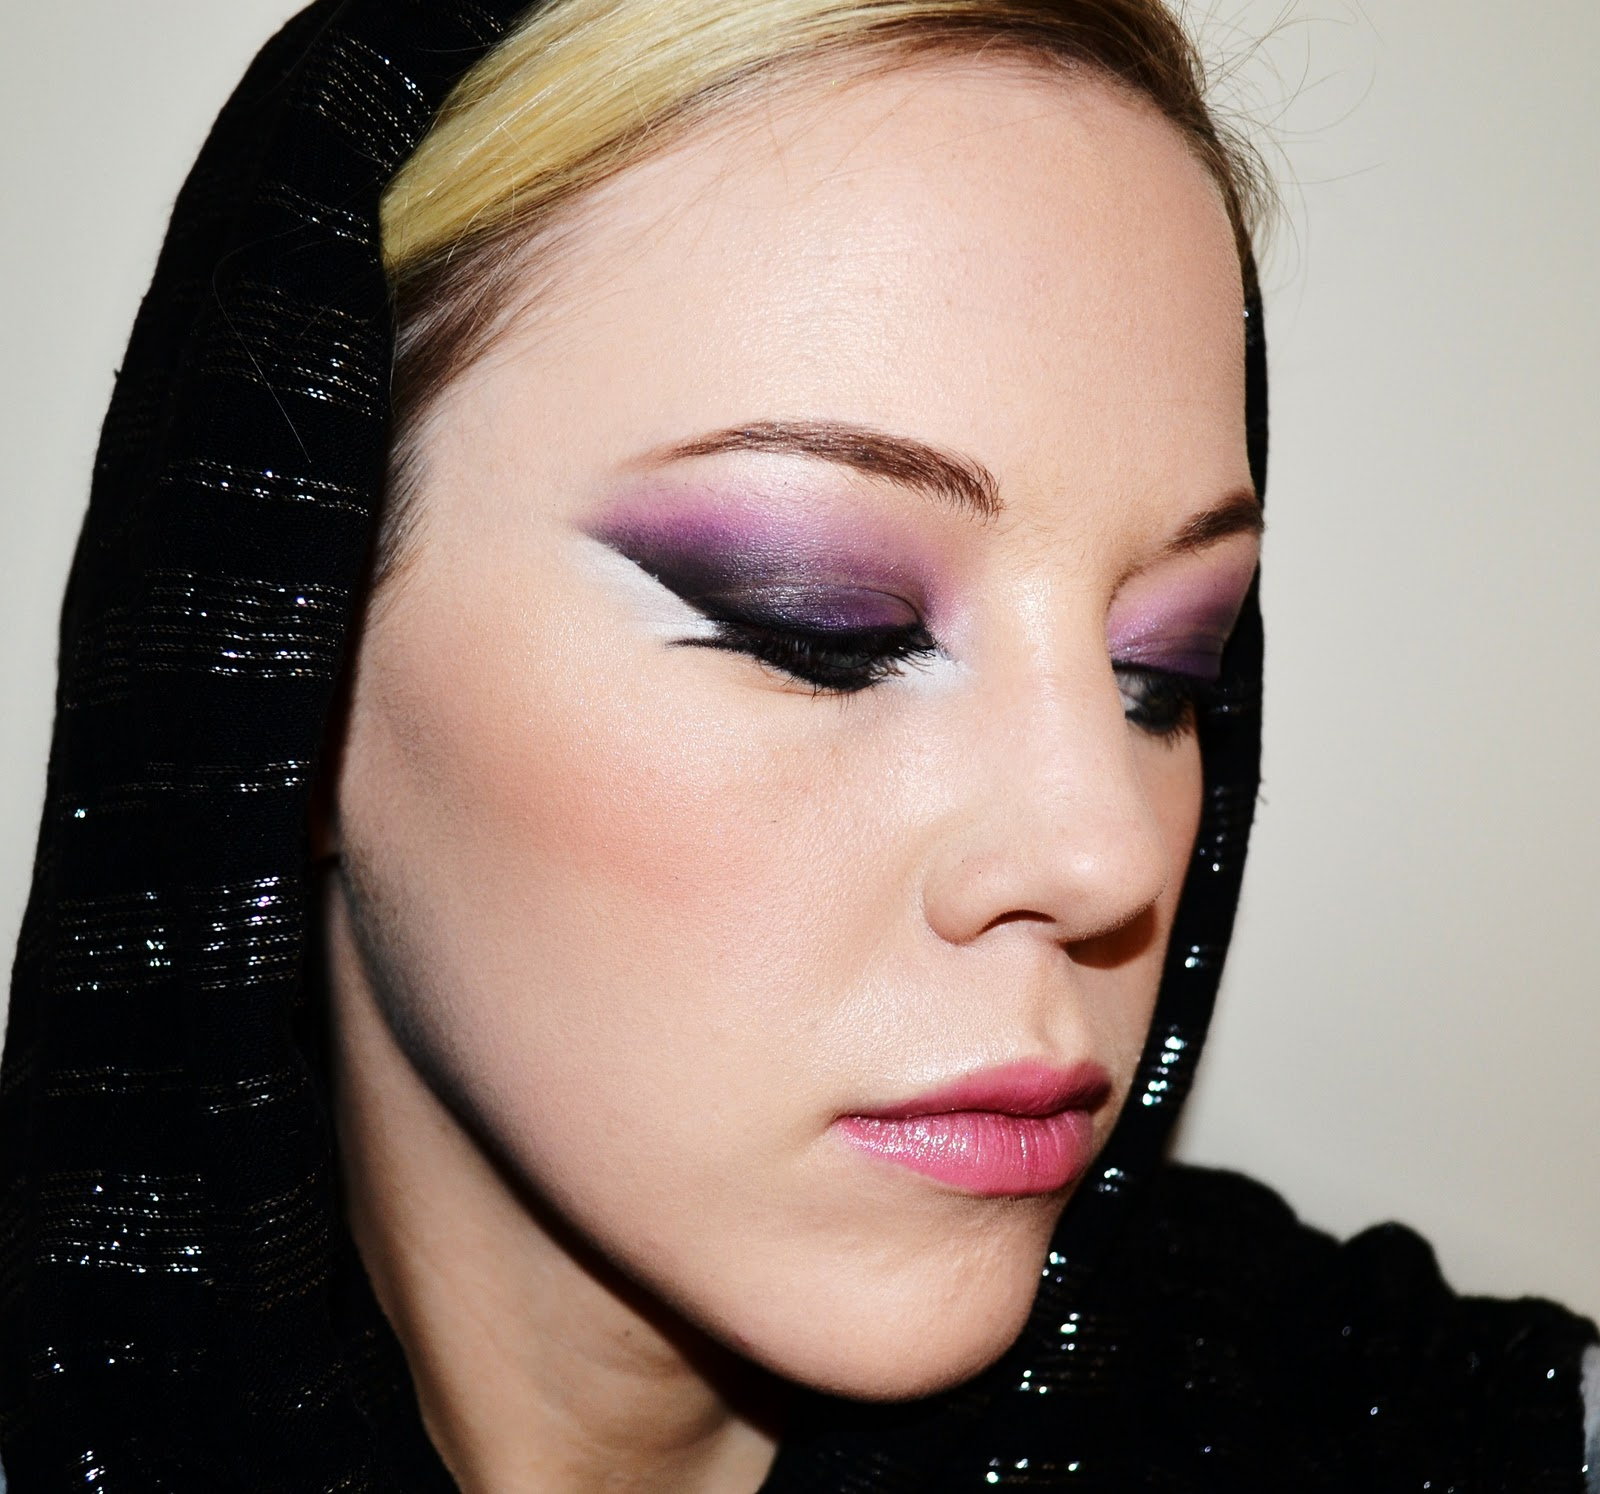 Makeup by louisa fashion makeup i found this asian styled make up look from a tutorial on youtube and loved the dramatic finish baditri Choice Image